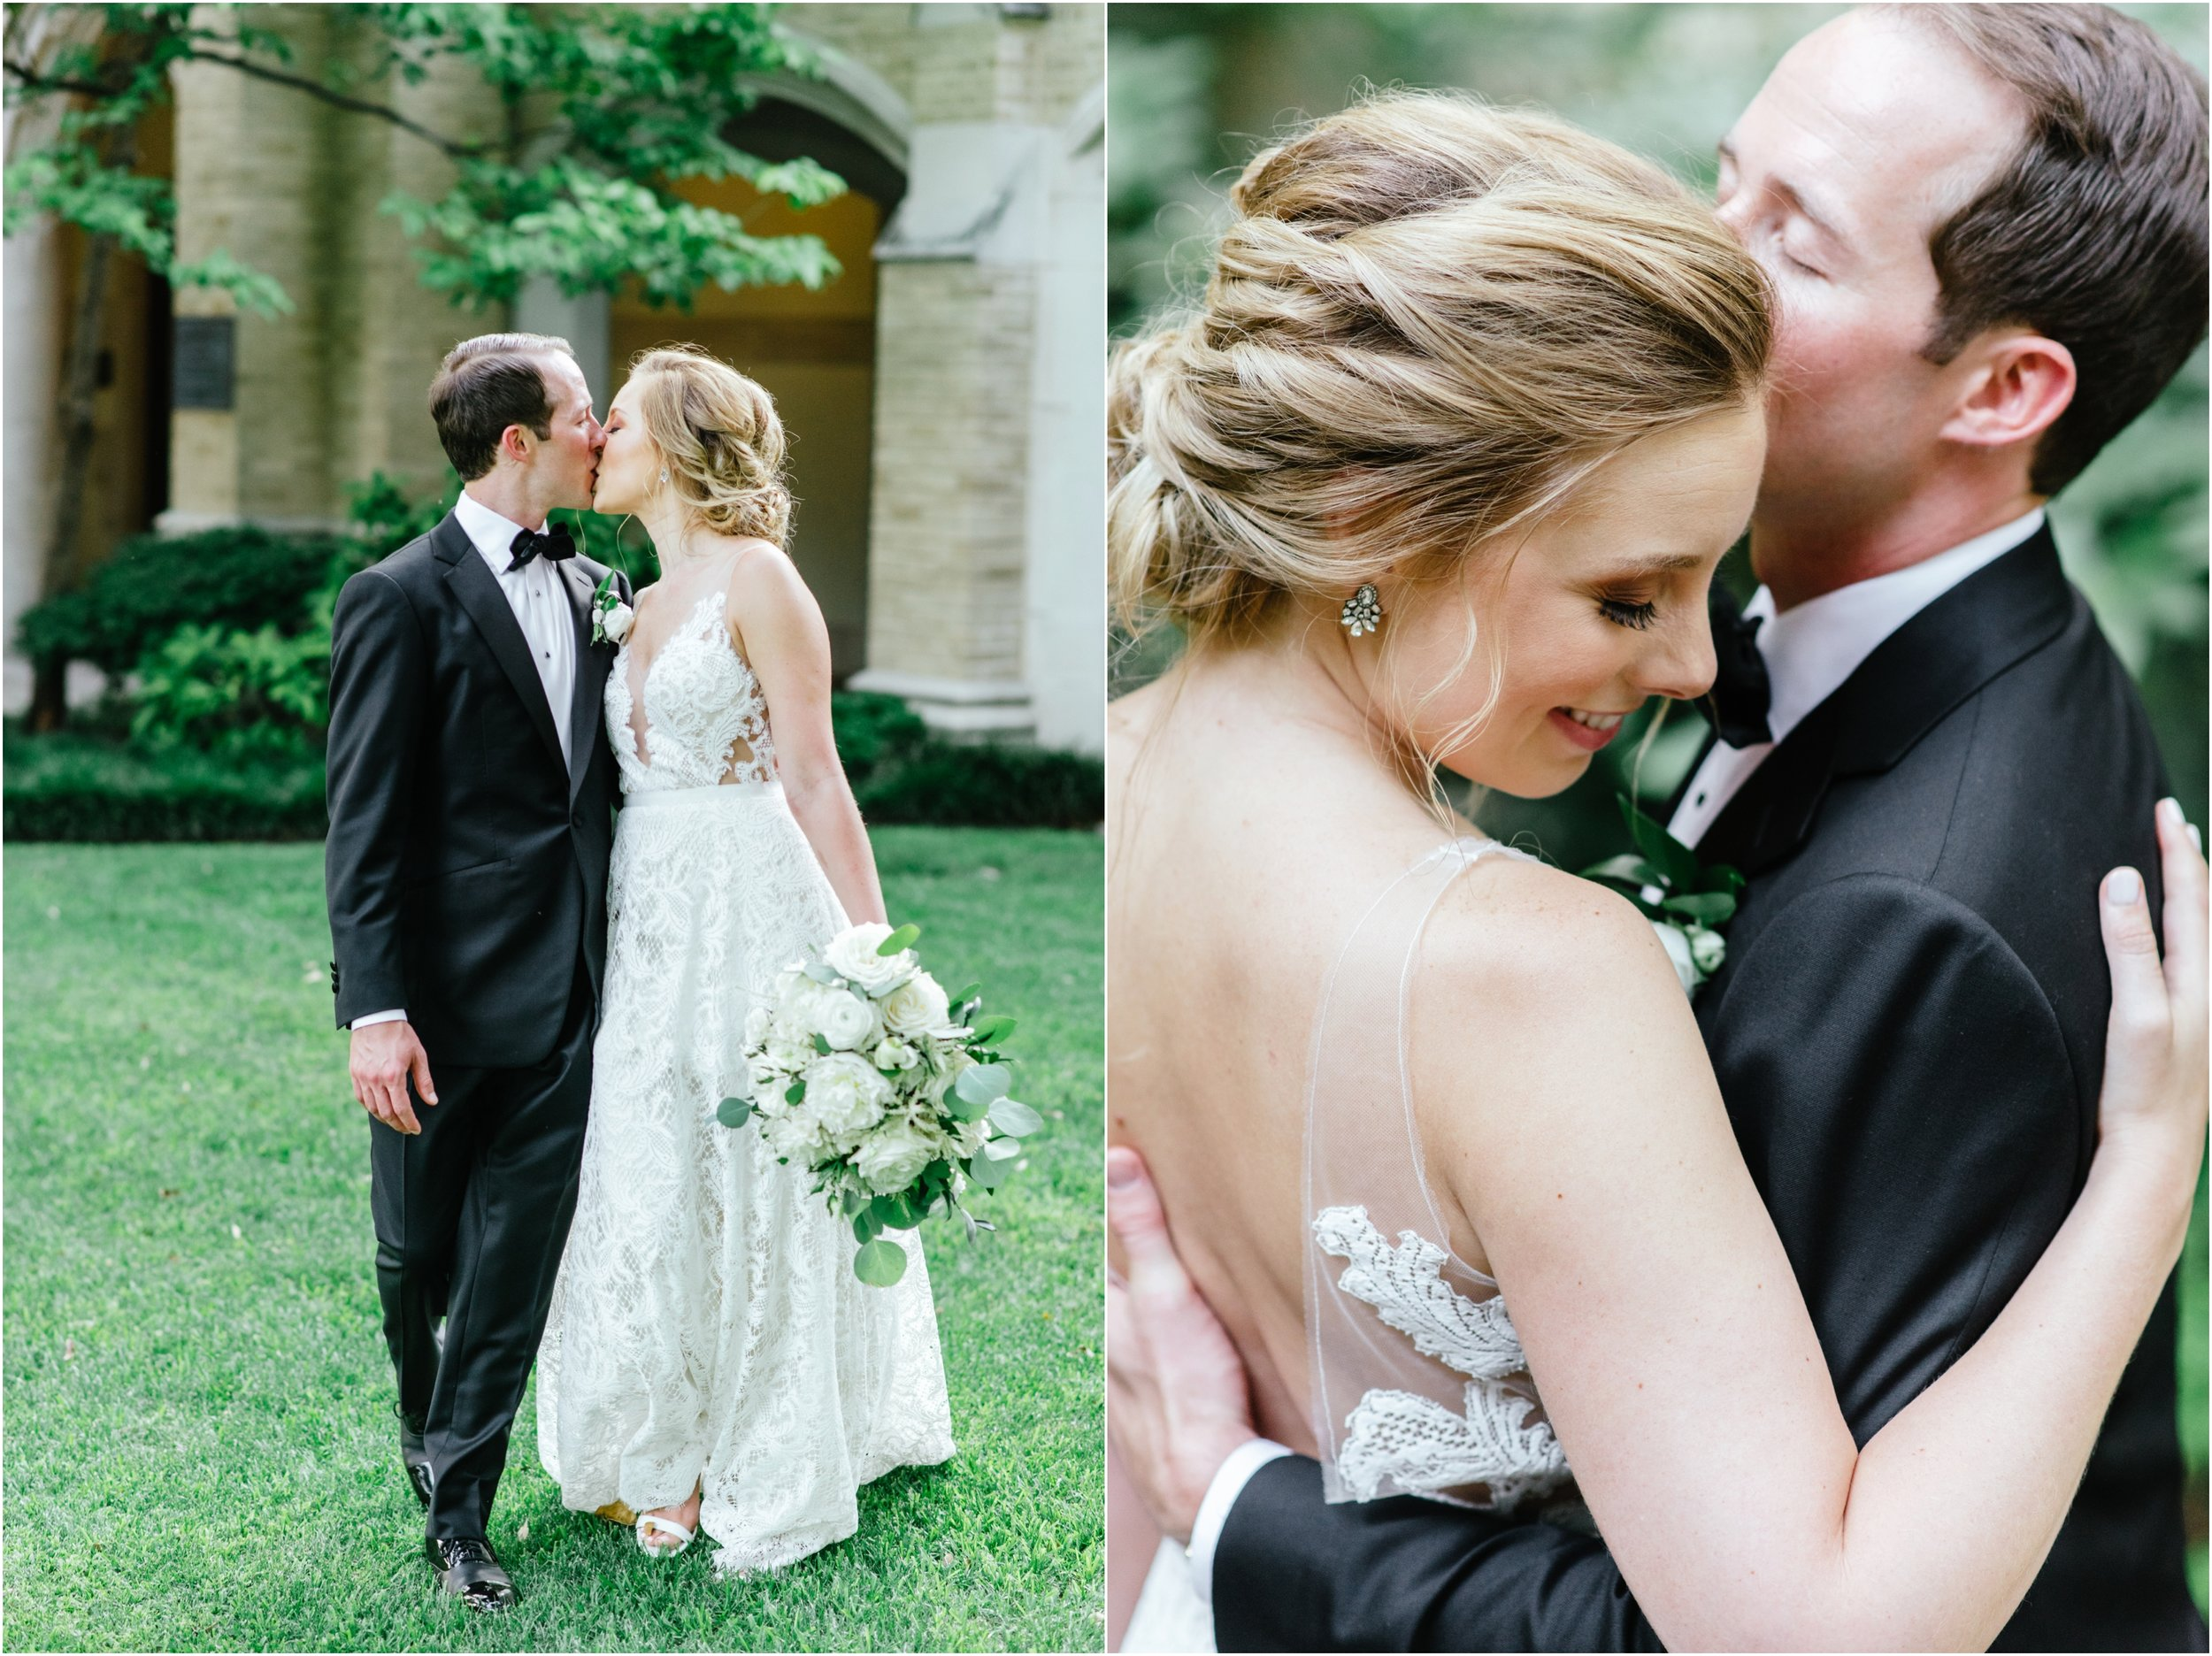 dallasweddingphotographer_fortworthweddingphotographer_texasweddingphotographer_mattandjulieweddings_Lauren+Andy_0074.jpg